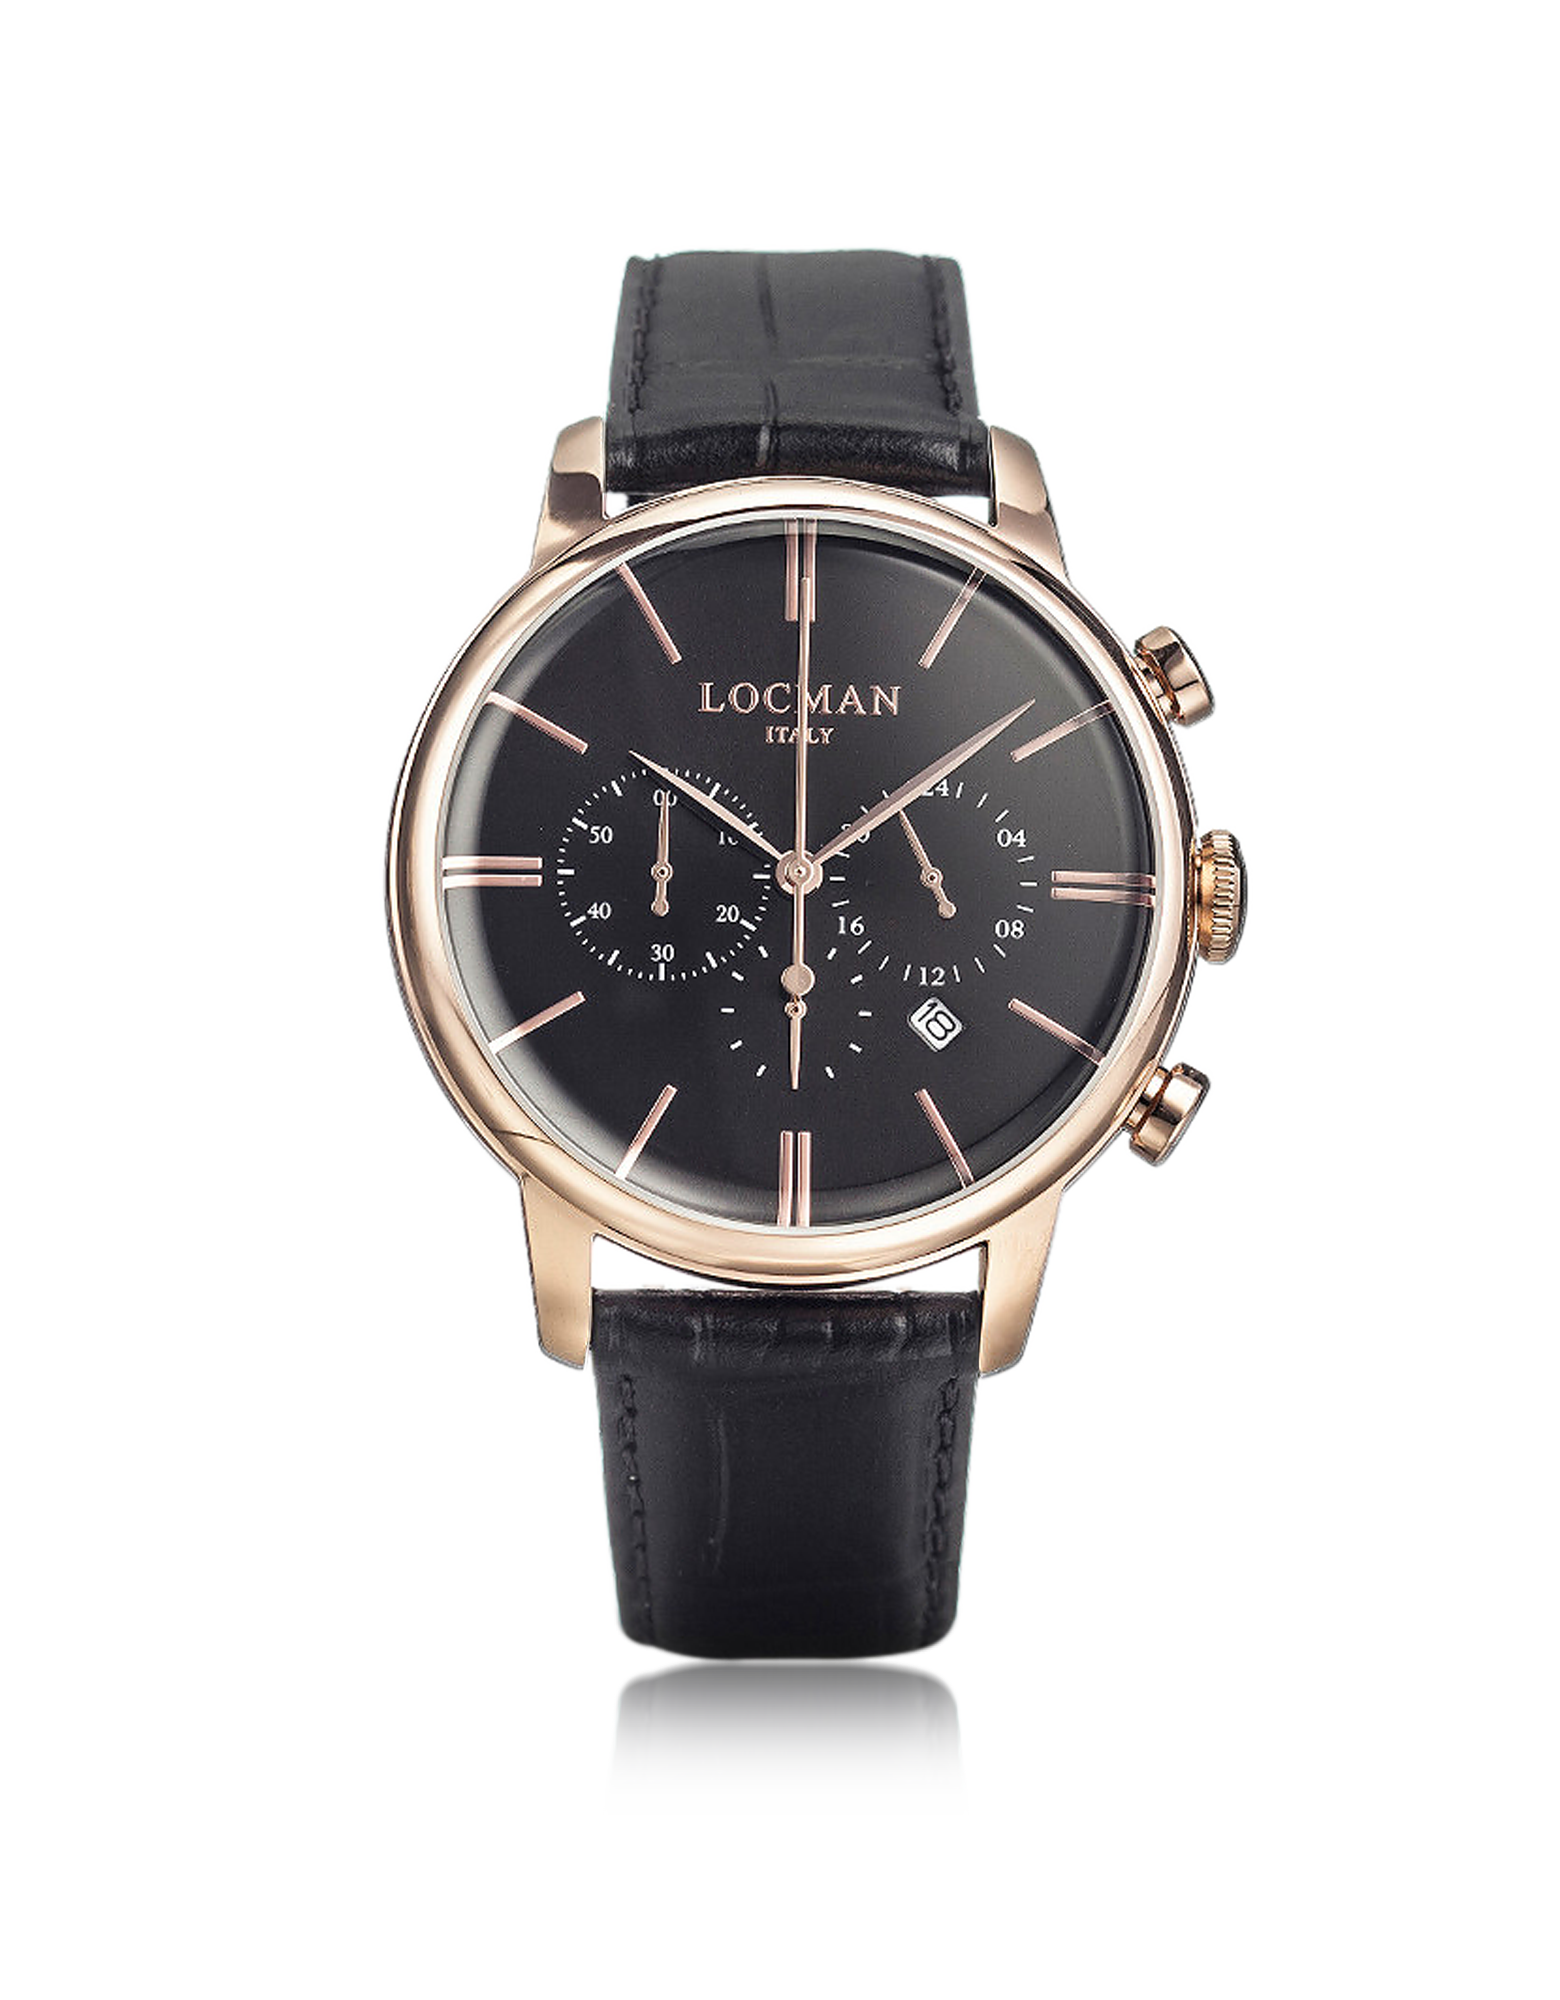 Image of 1960 Rose Gold PVD Stainlees Steel Men's Chronograph Watch w/Black Strap